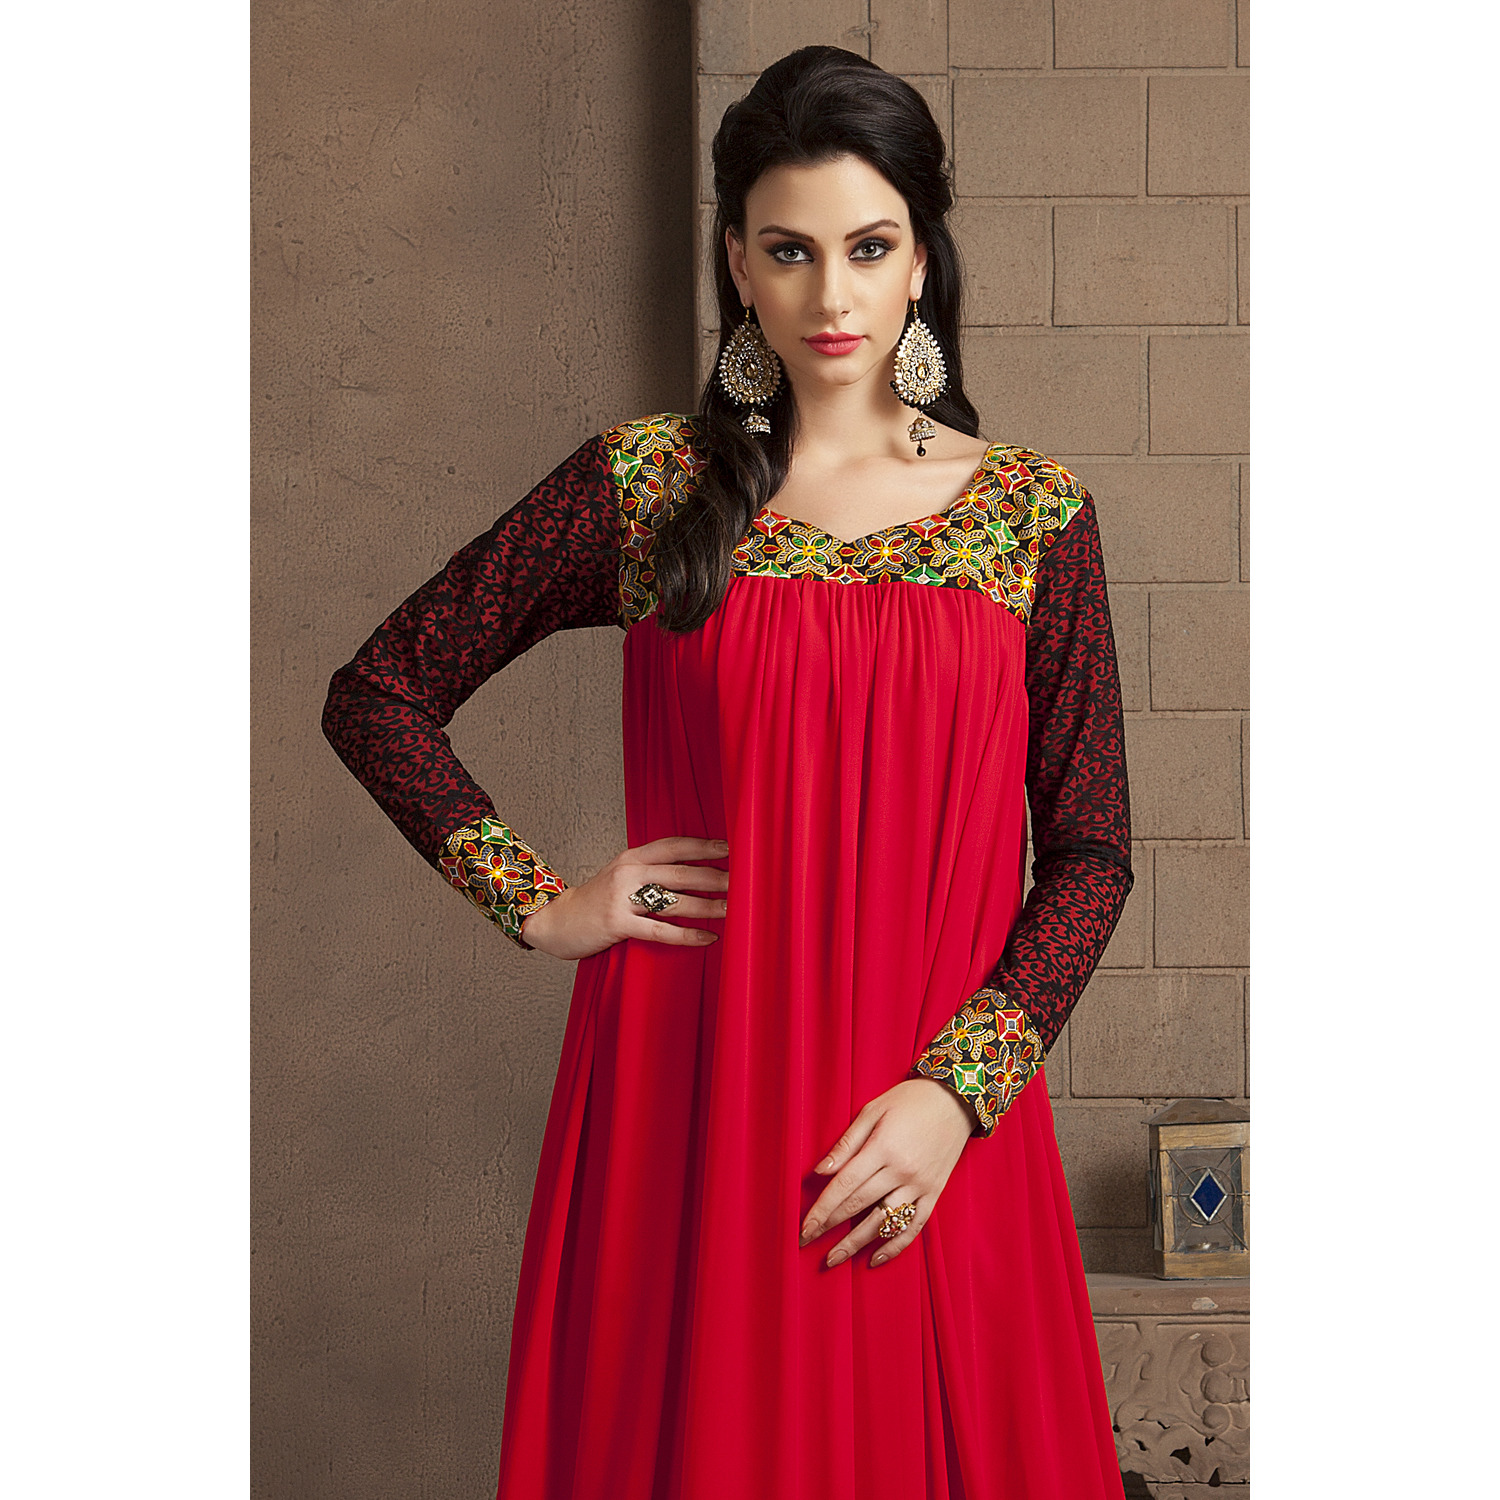 Red Color Long Sleeve Modern Embroidery Maxi Dress (Size:S)